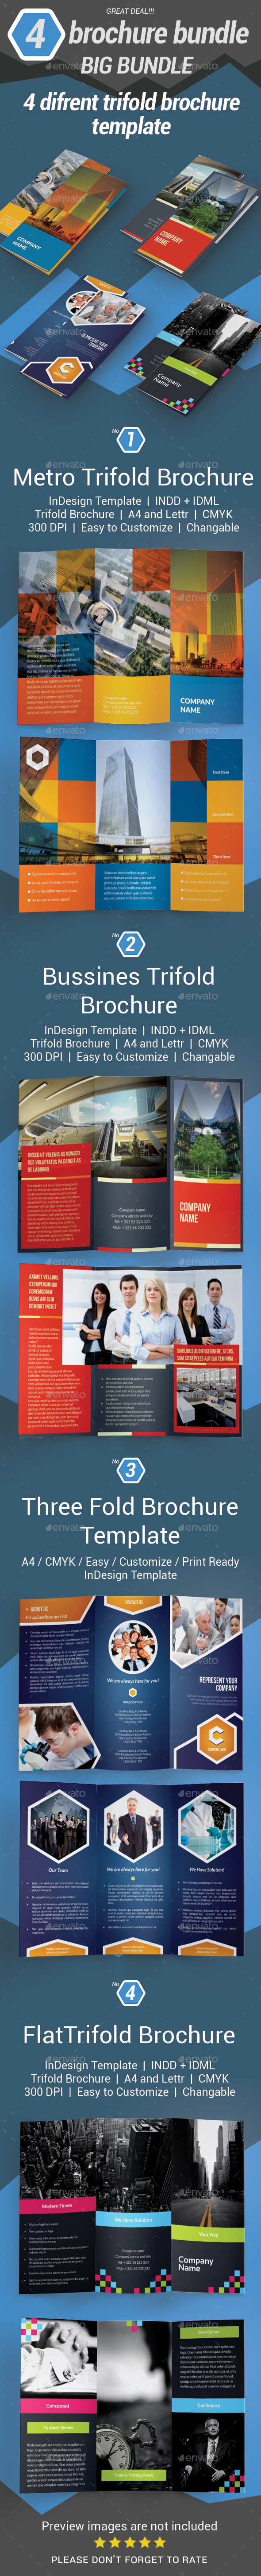 Trifold Brochure Bundle - Brochures Print Templates